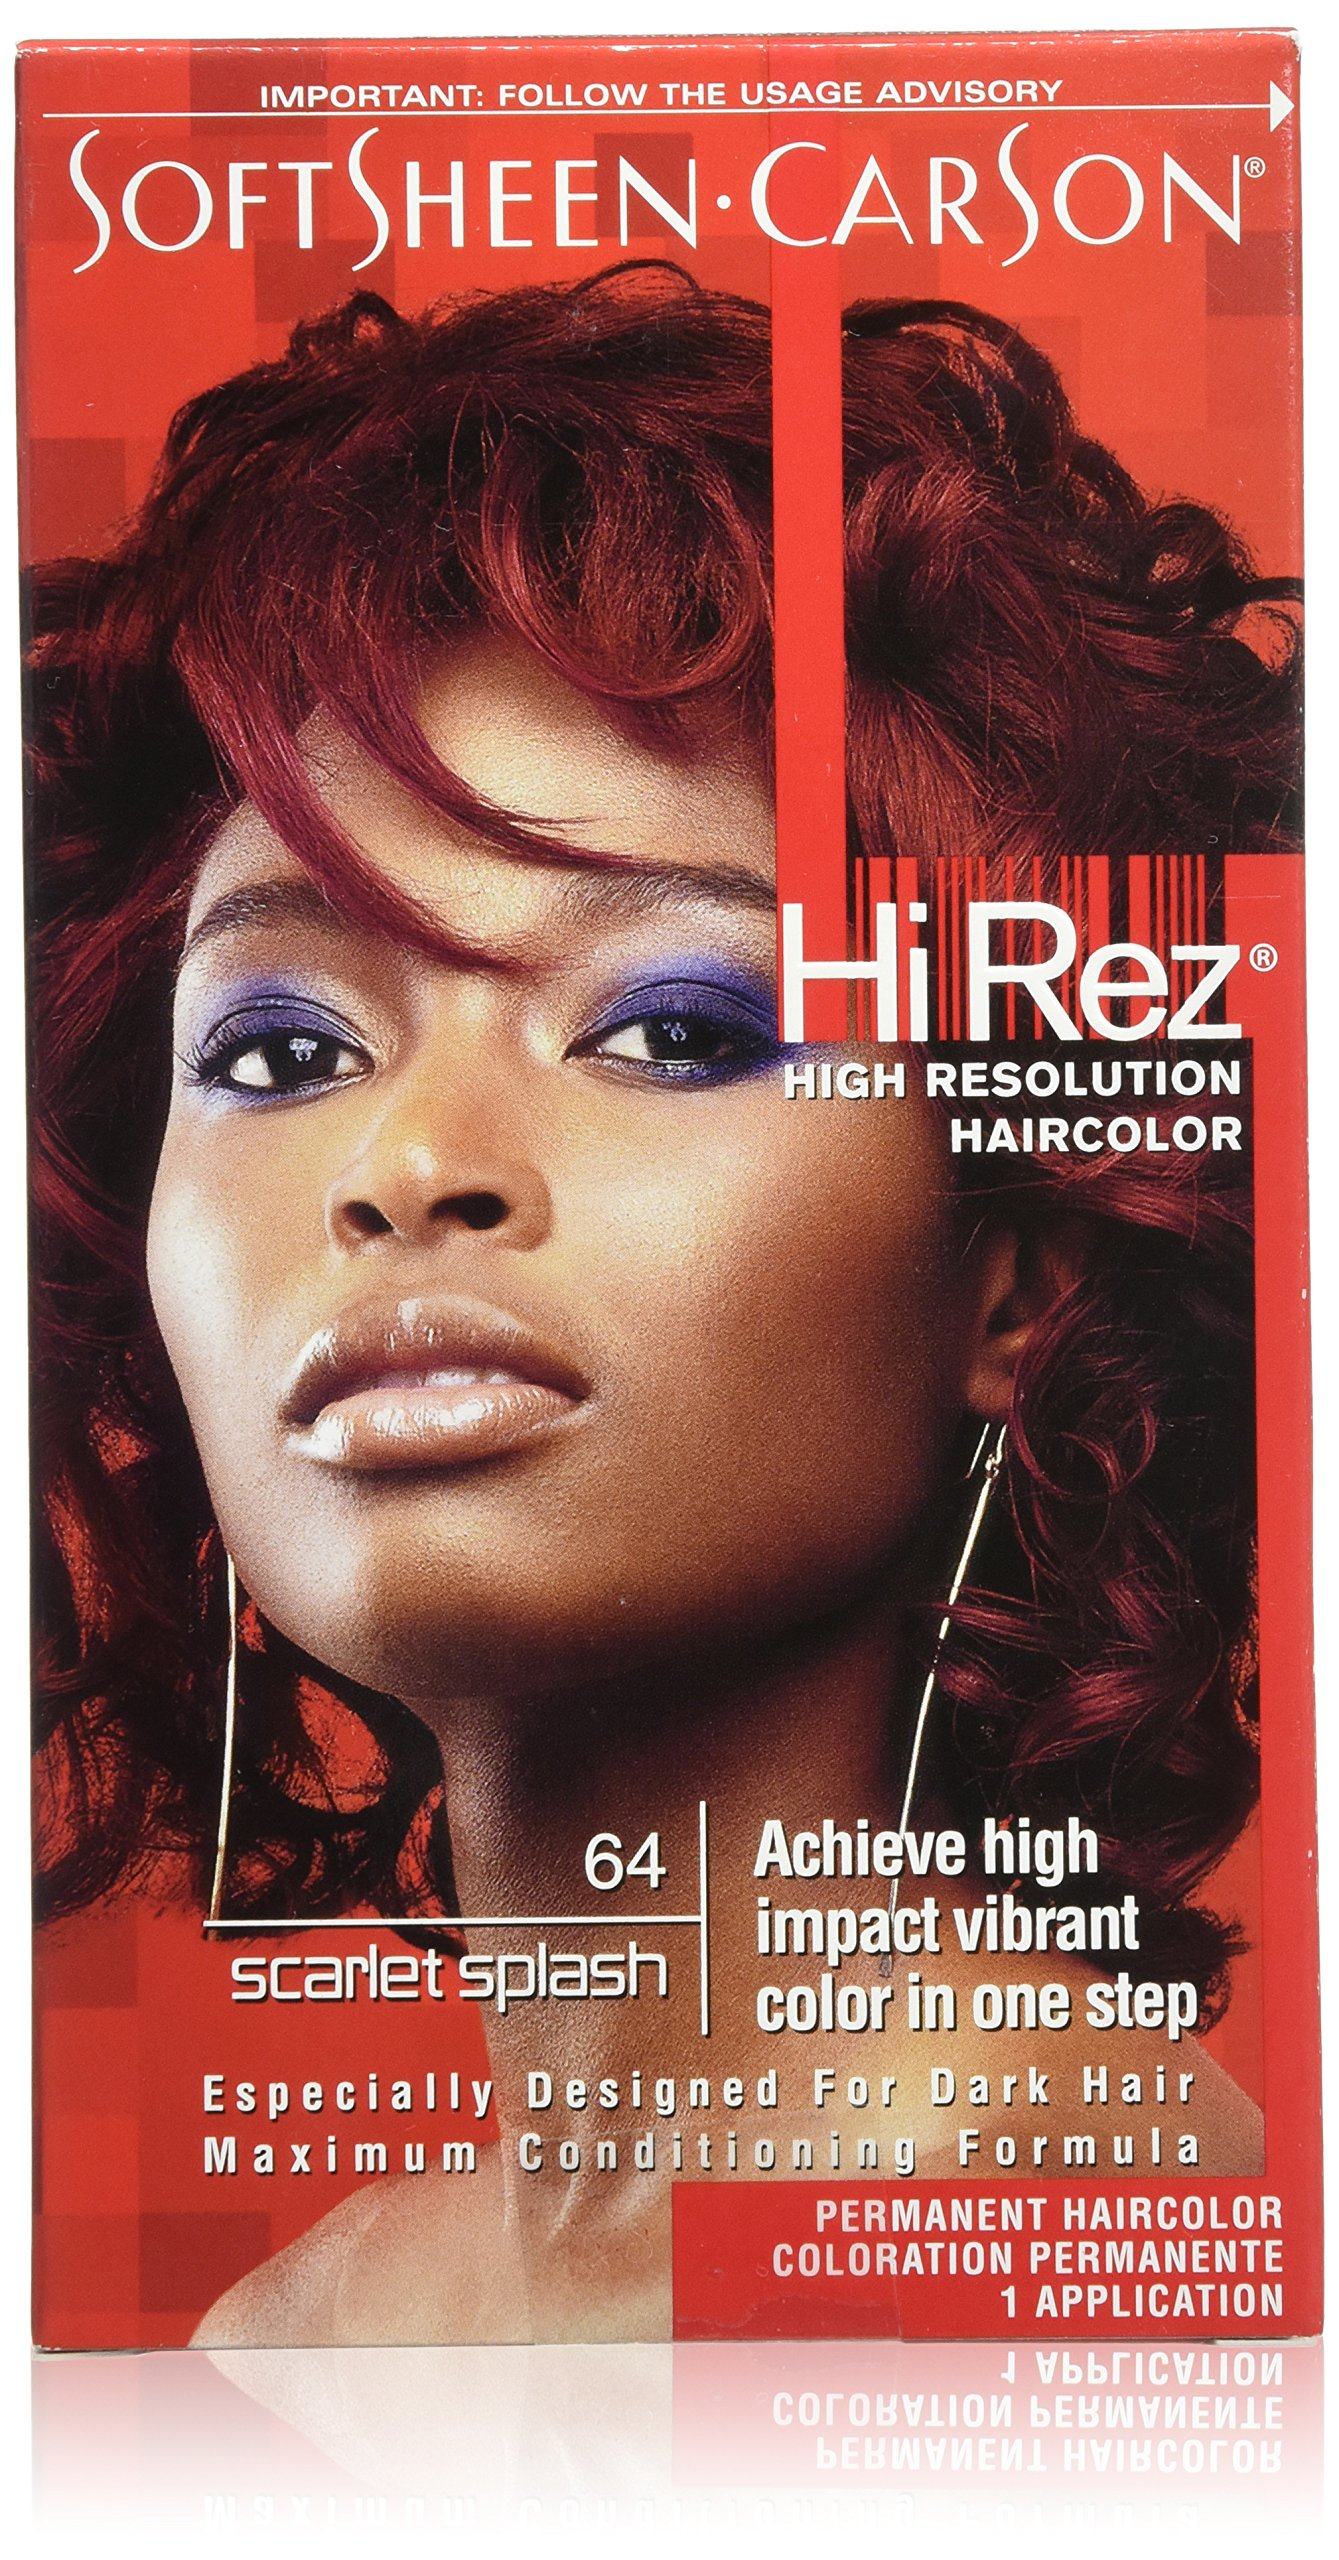 Amazon Softsheen Carson Hi Rez High Resolution Haircolor